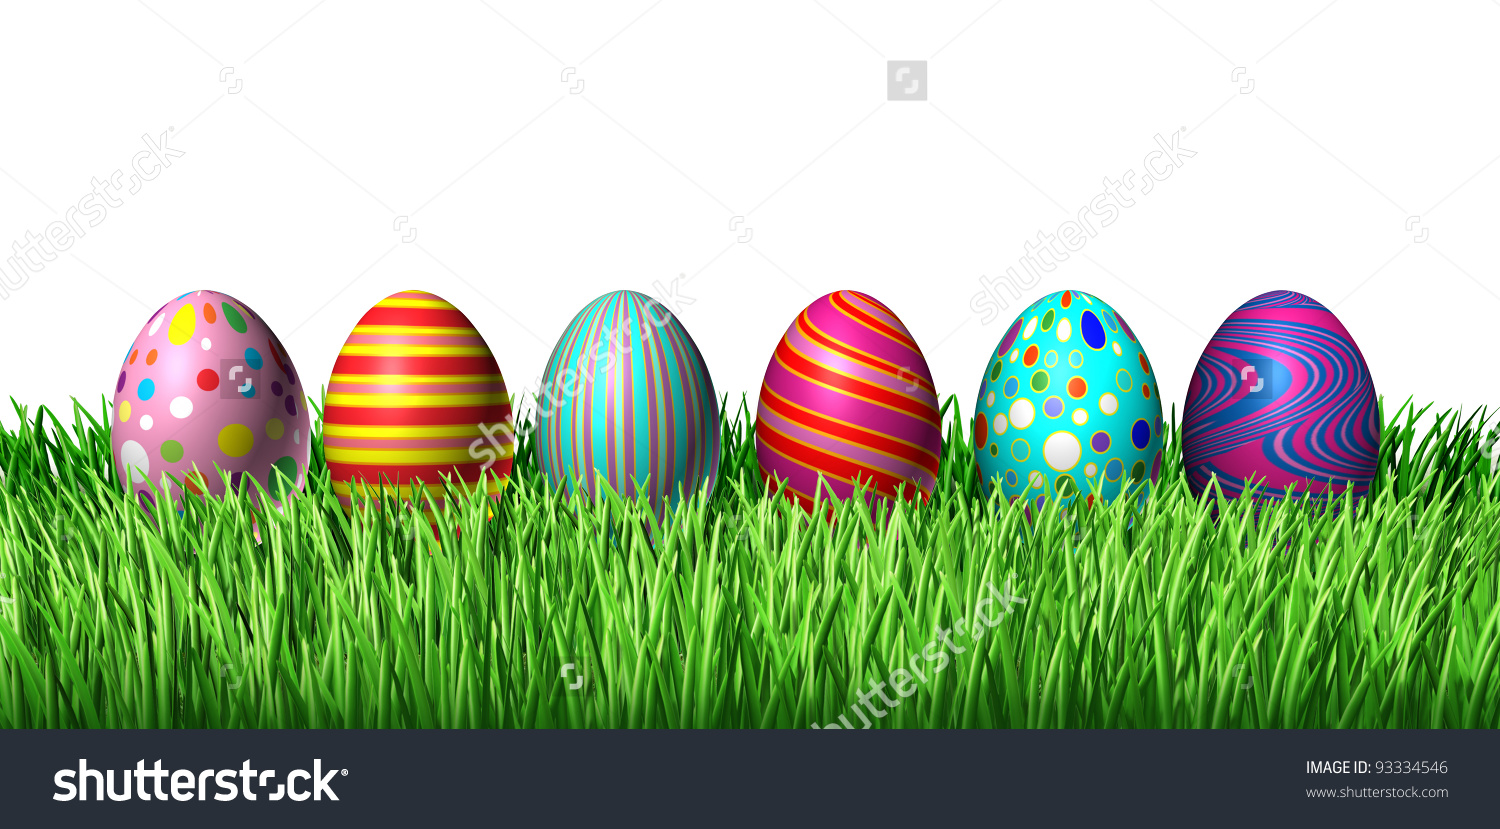 Easter row clipart png freeuse download Easter row clipart - ClipartFox png freeuse download